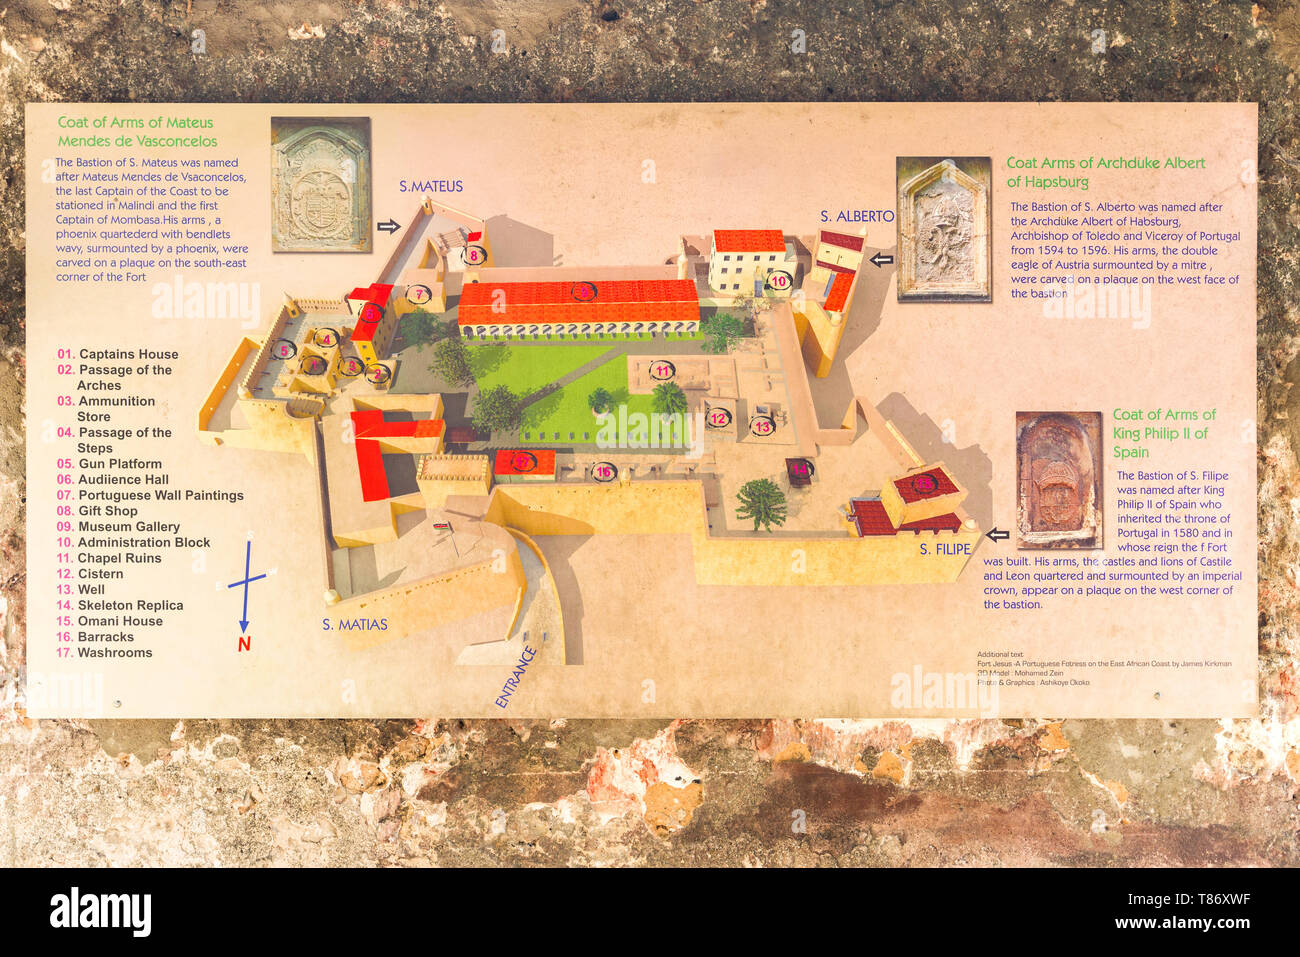 A map of Fort Jesus on a stone wall showing the main points of interest within the fort, Mombasa, Kenya - Stock Image